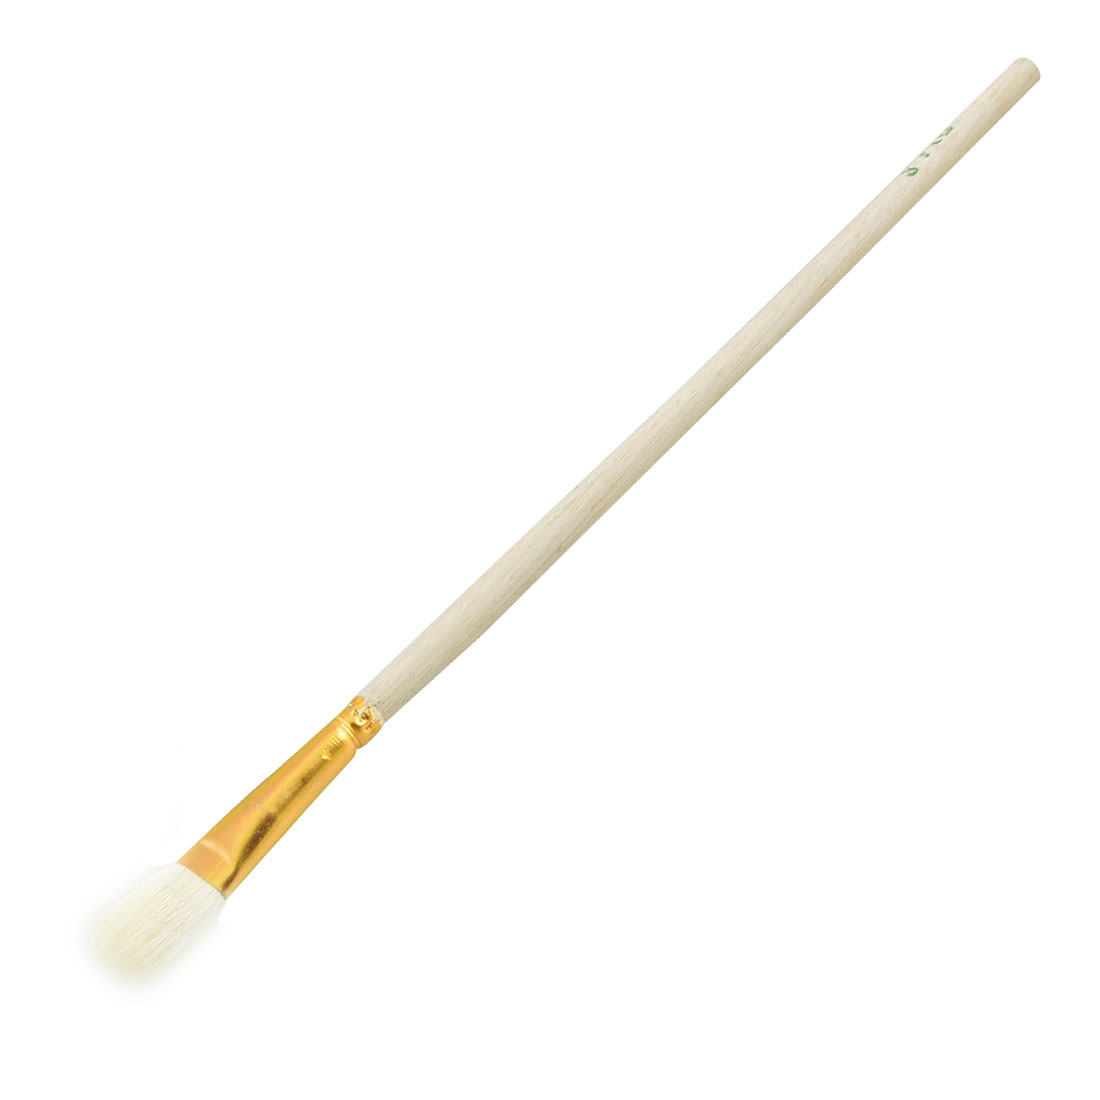 "Wood Handle 0.4"" White Faux Fur Head Painting Tool Paint Brush"